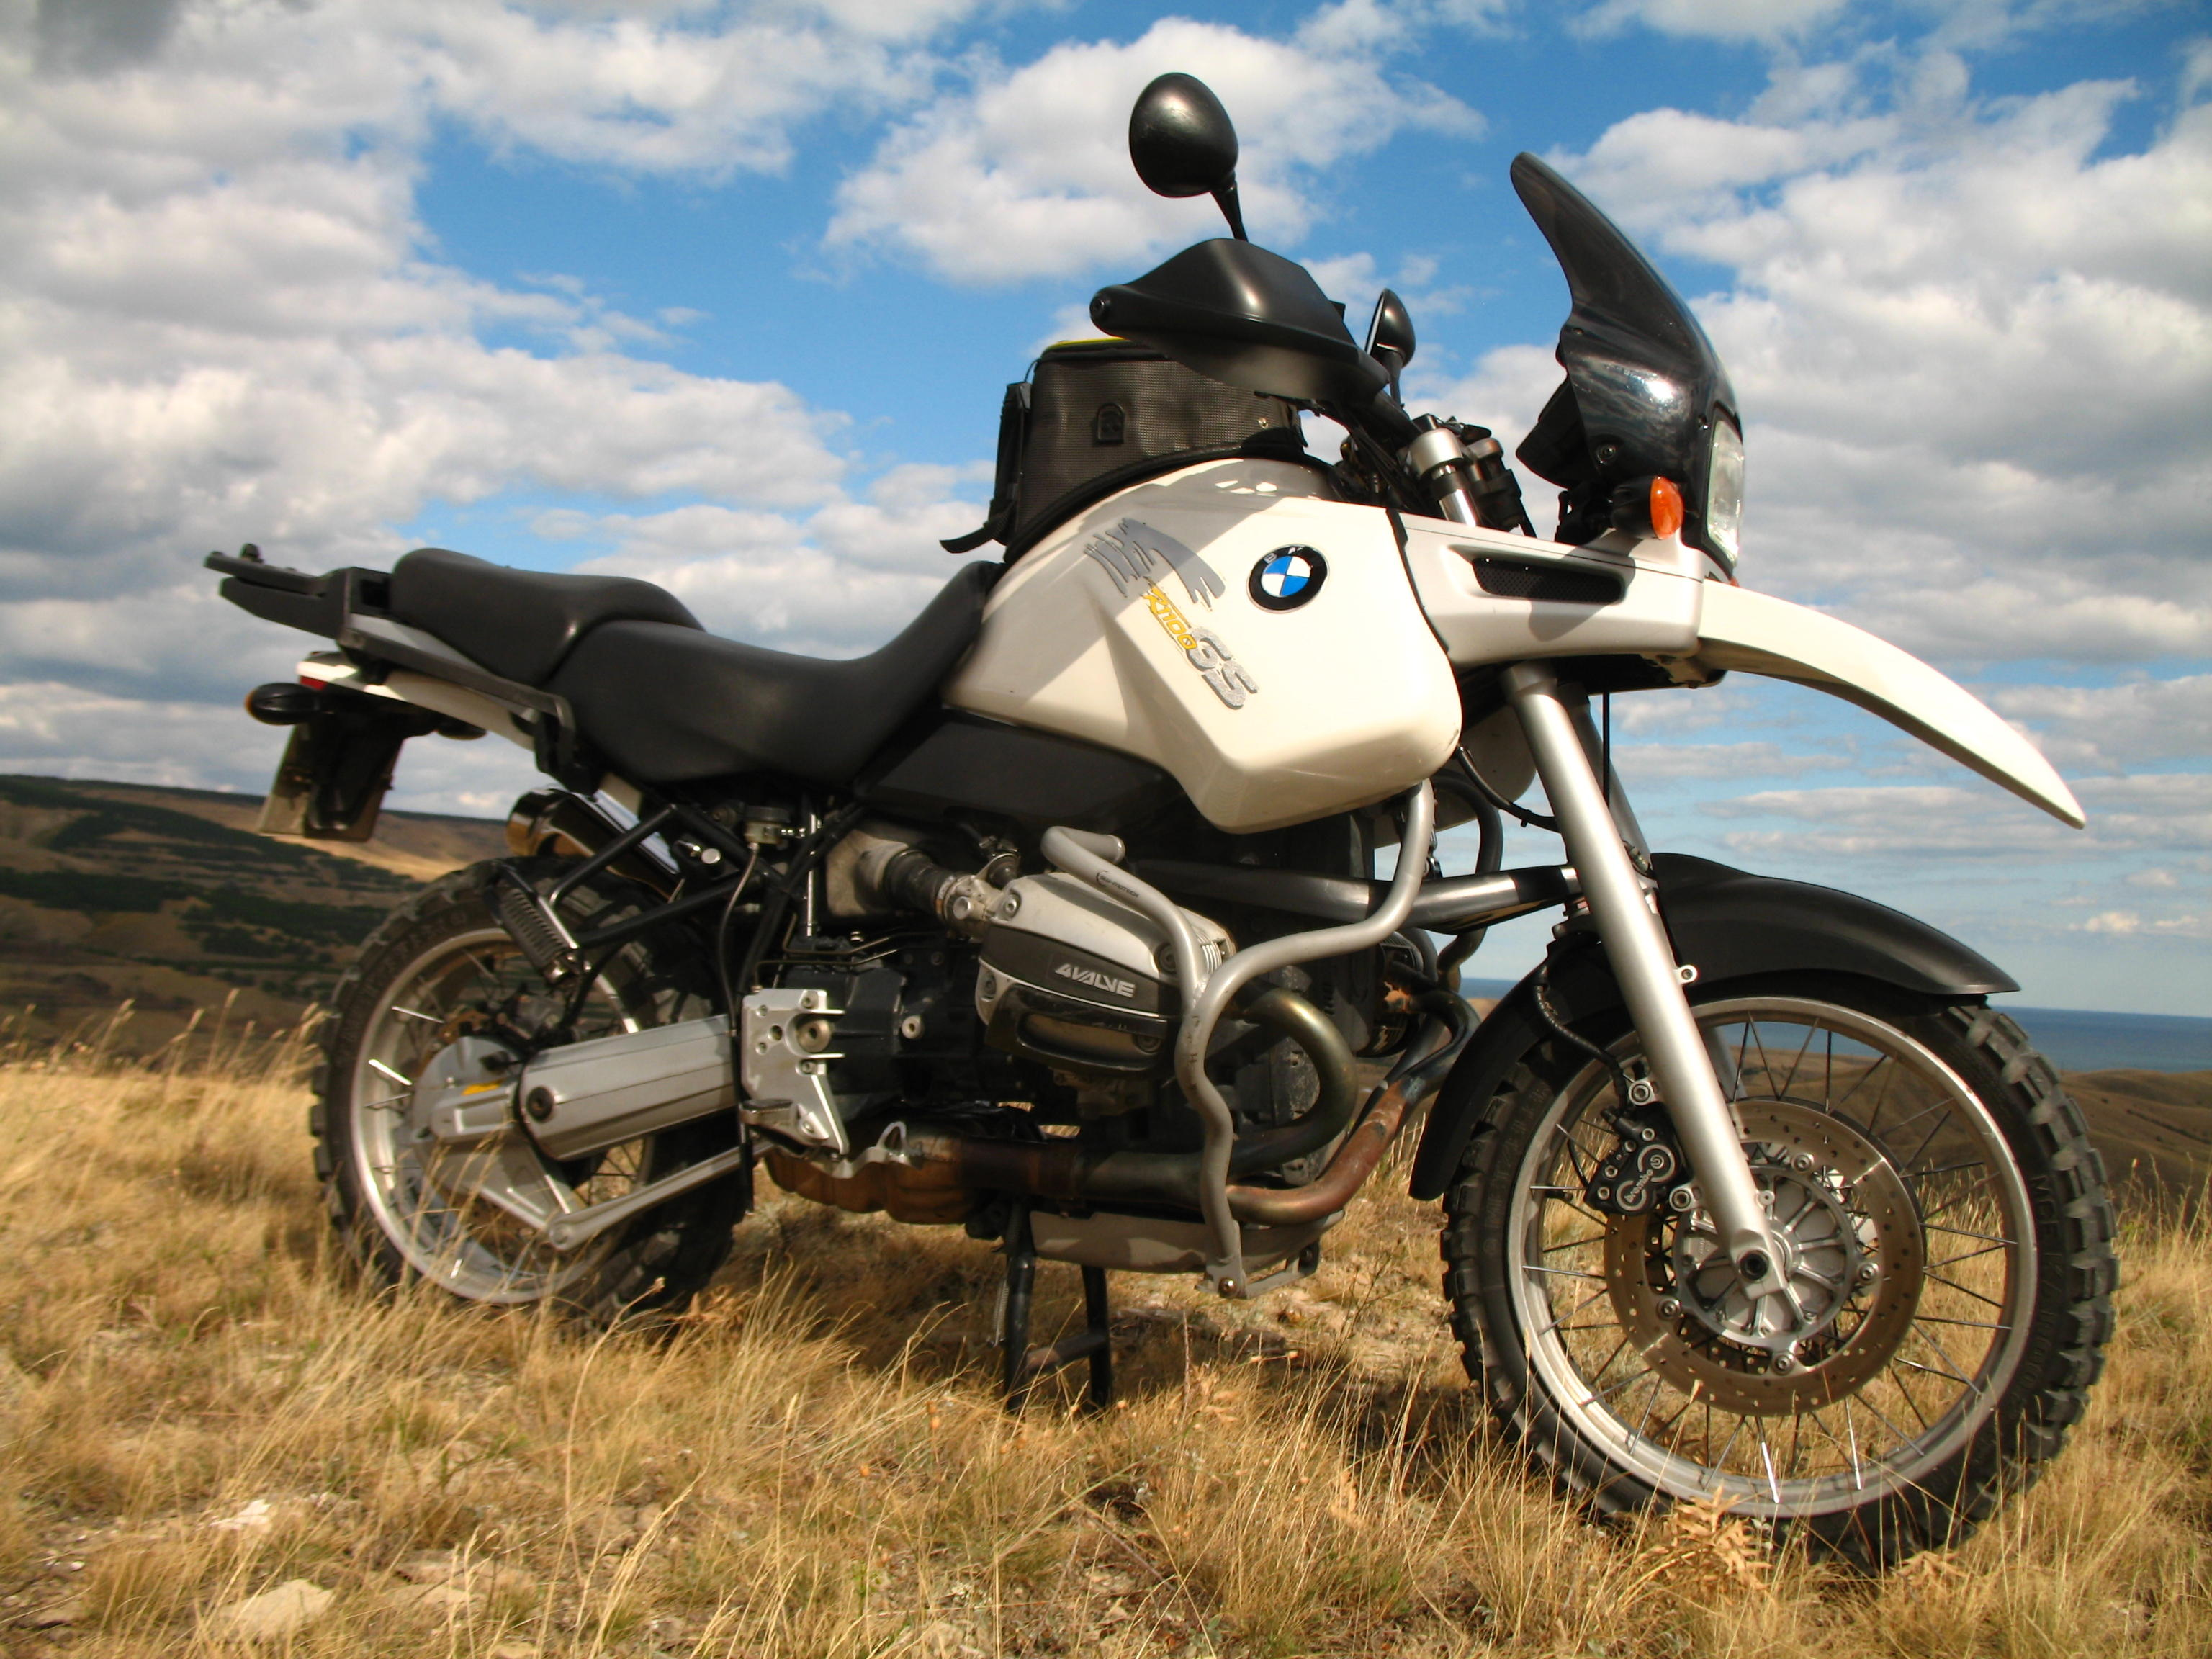 BMW R1100GS 1995 images #6206